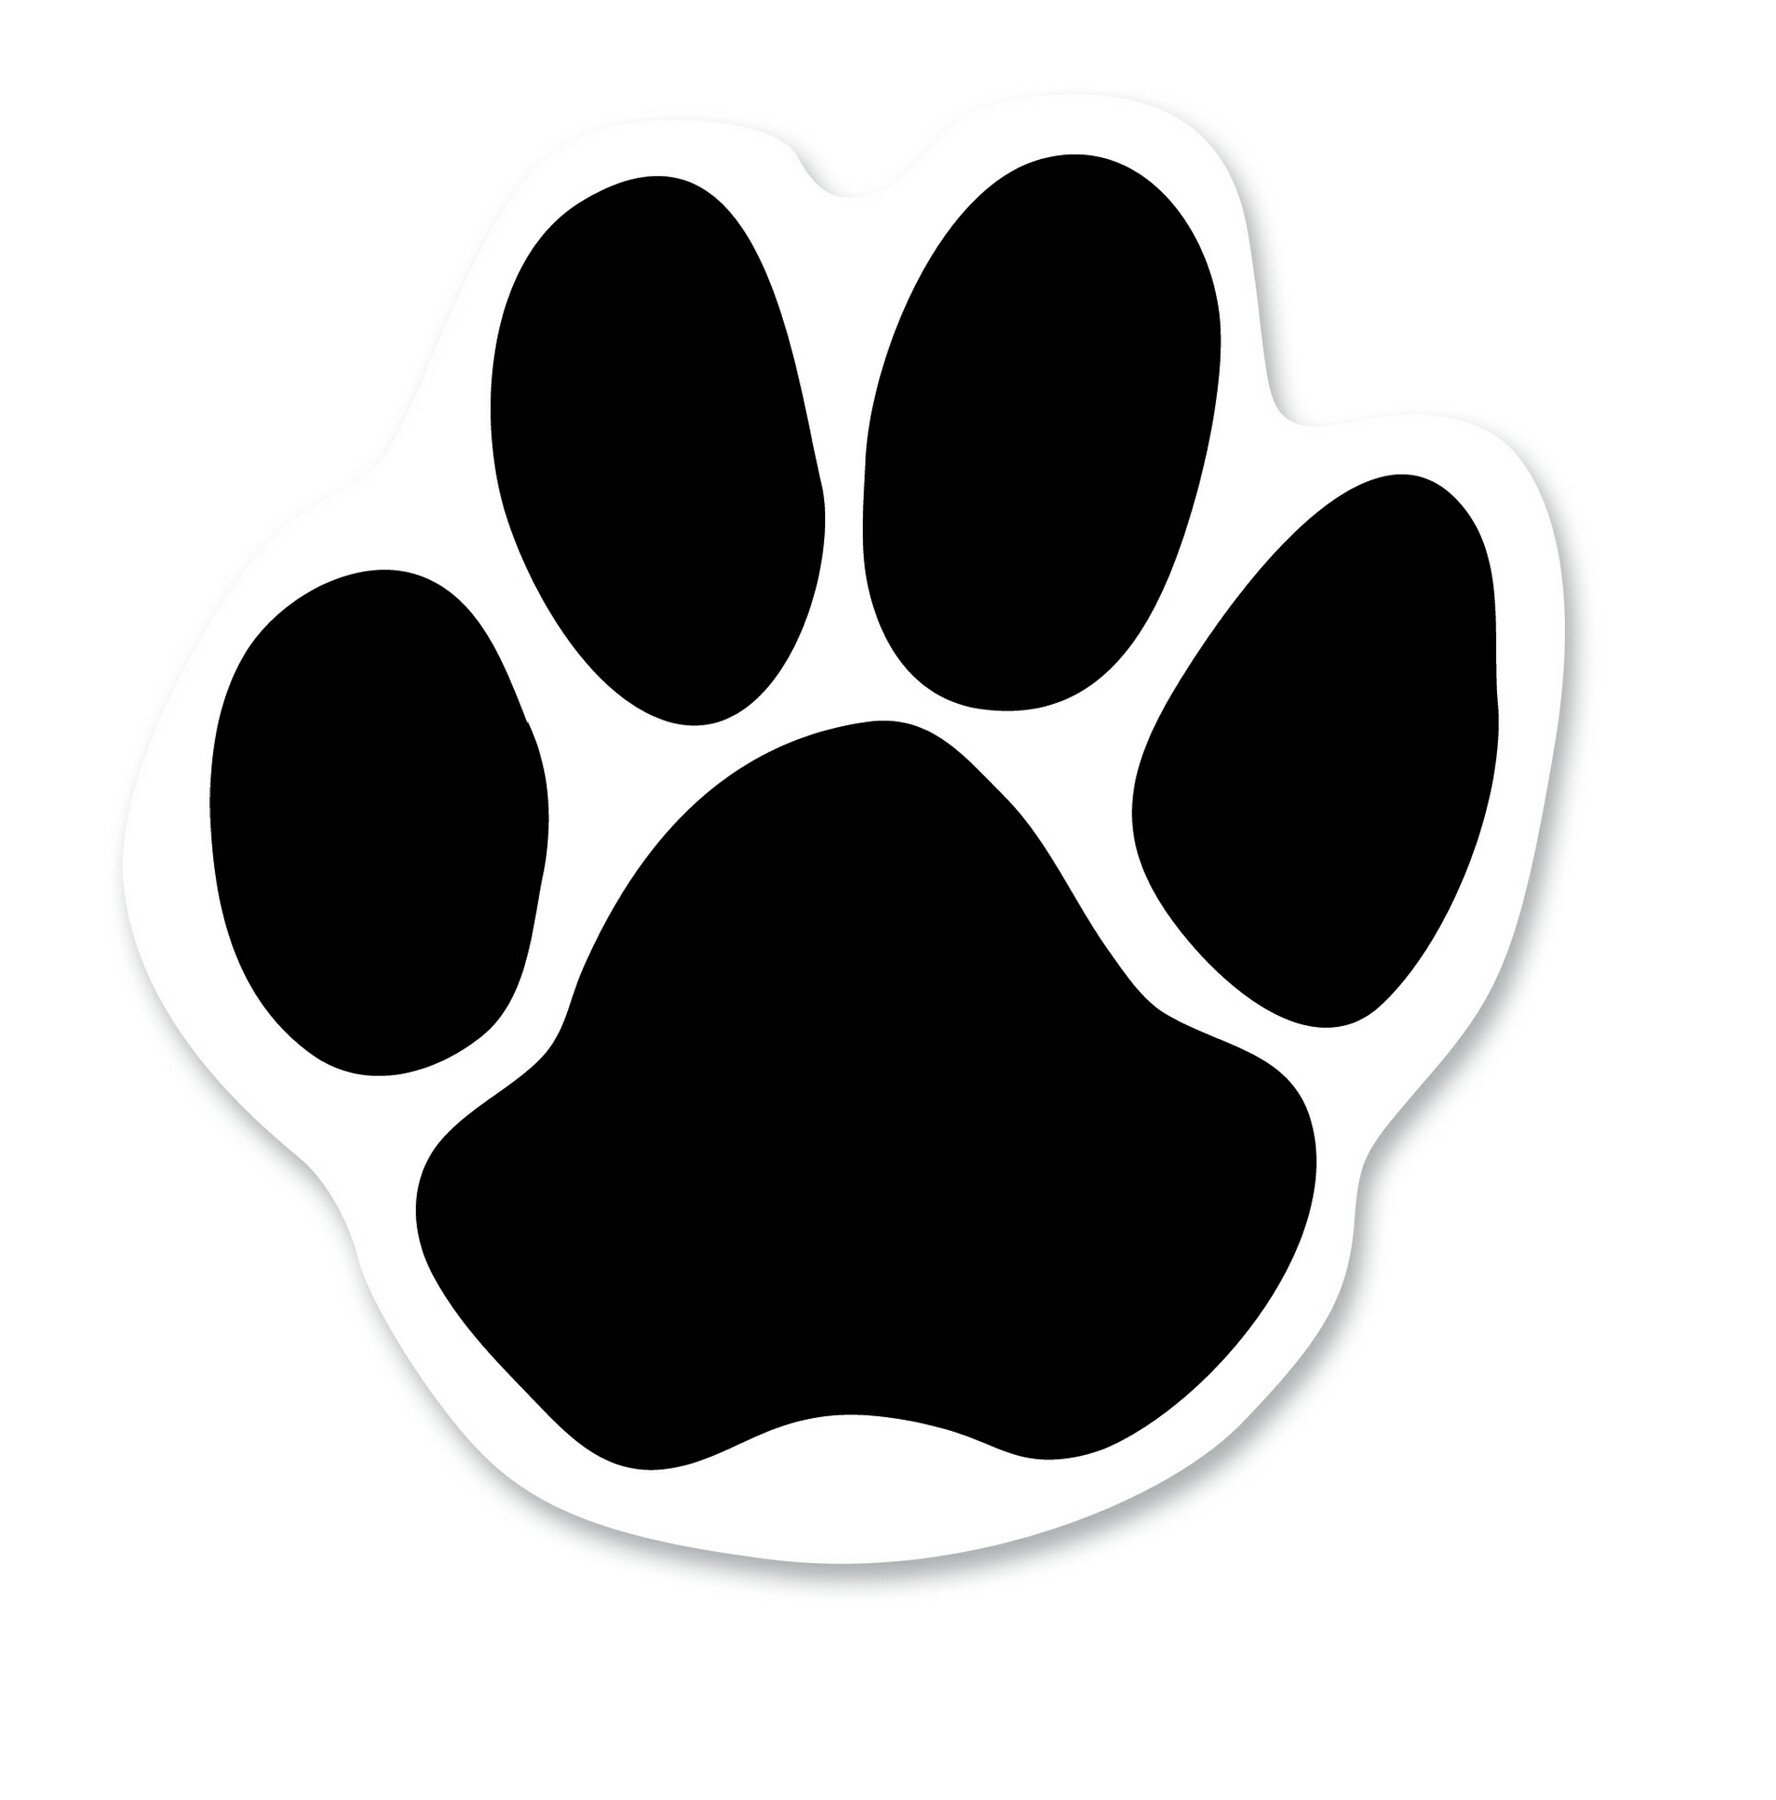 Coyote paw print clipart vector black and white library Jaguar Paw Print Clipart | Free download best Jaguar Paw Print ... vector black and white library